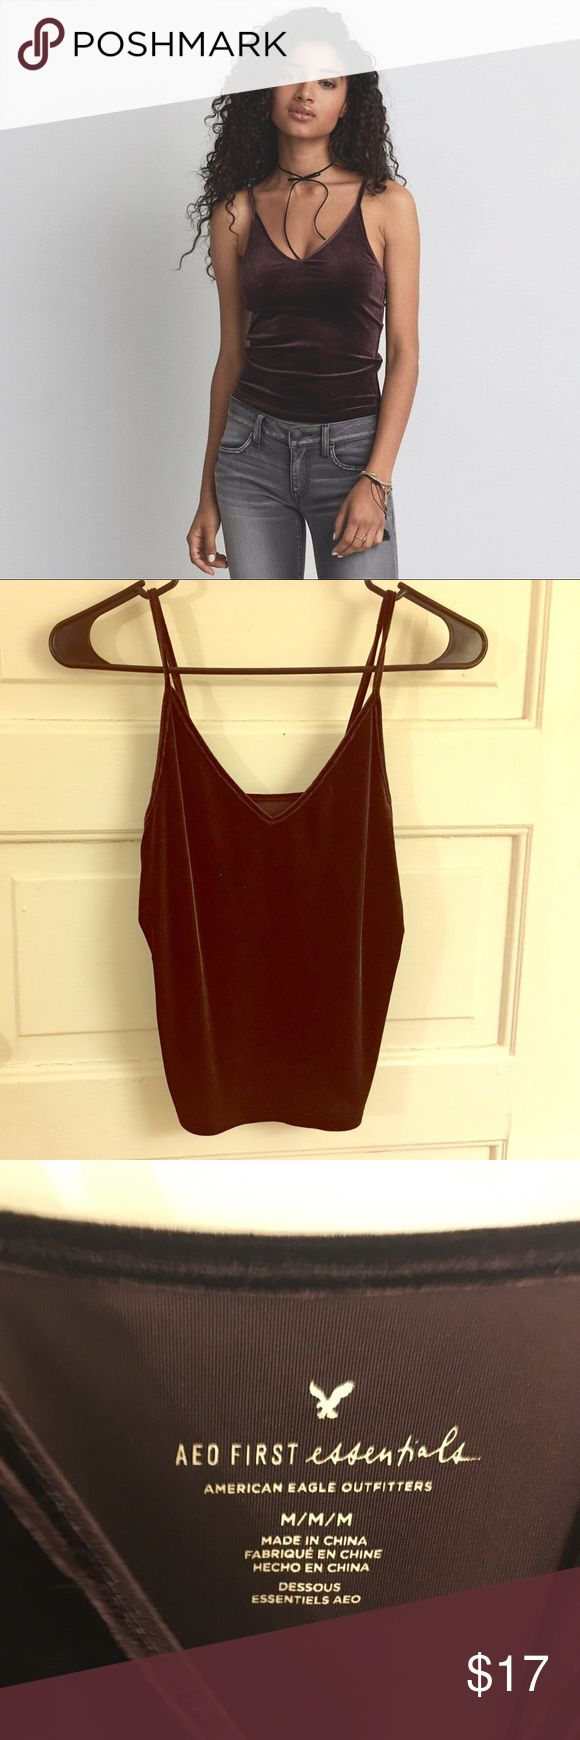 American Eagle Outfitters Velvet Tank Burgundy American Eagle Outfitters velvet tank top in size medium. Great condition, worn once. American Eagle Outfitters Tops Camisoles